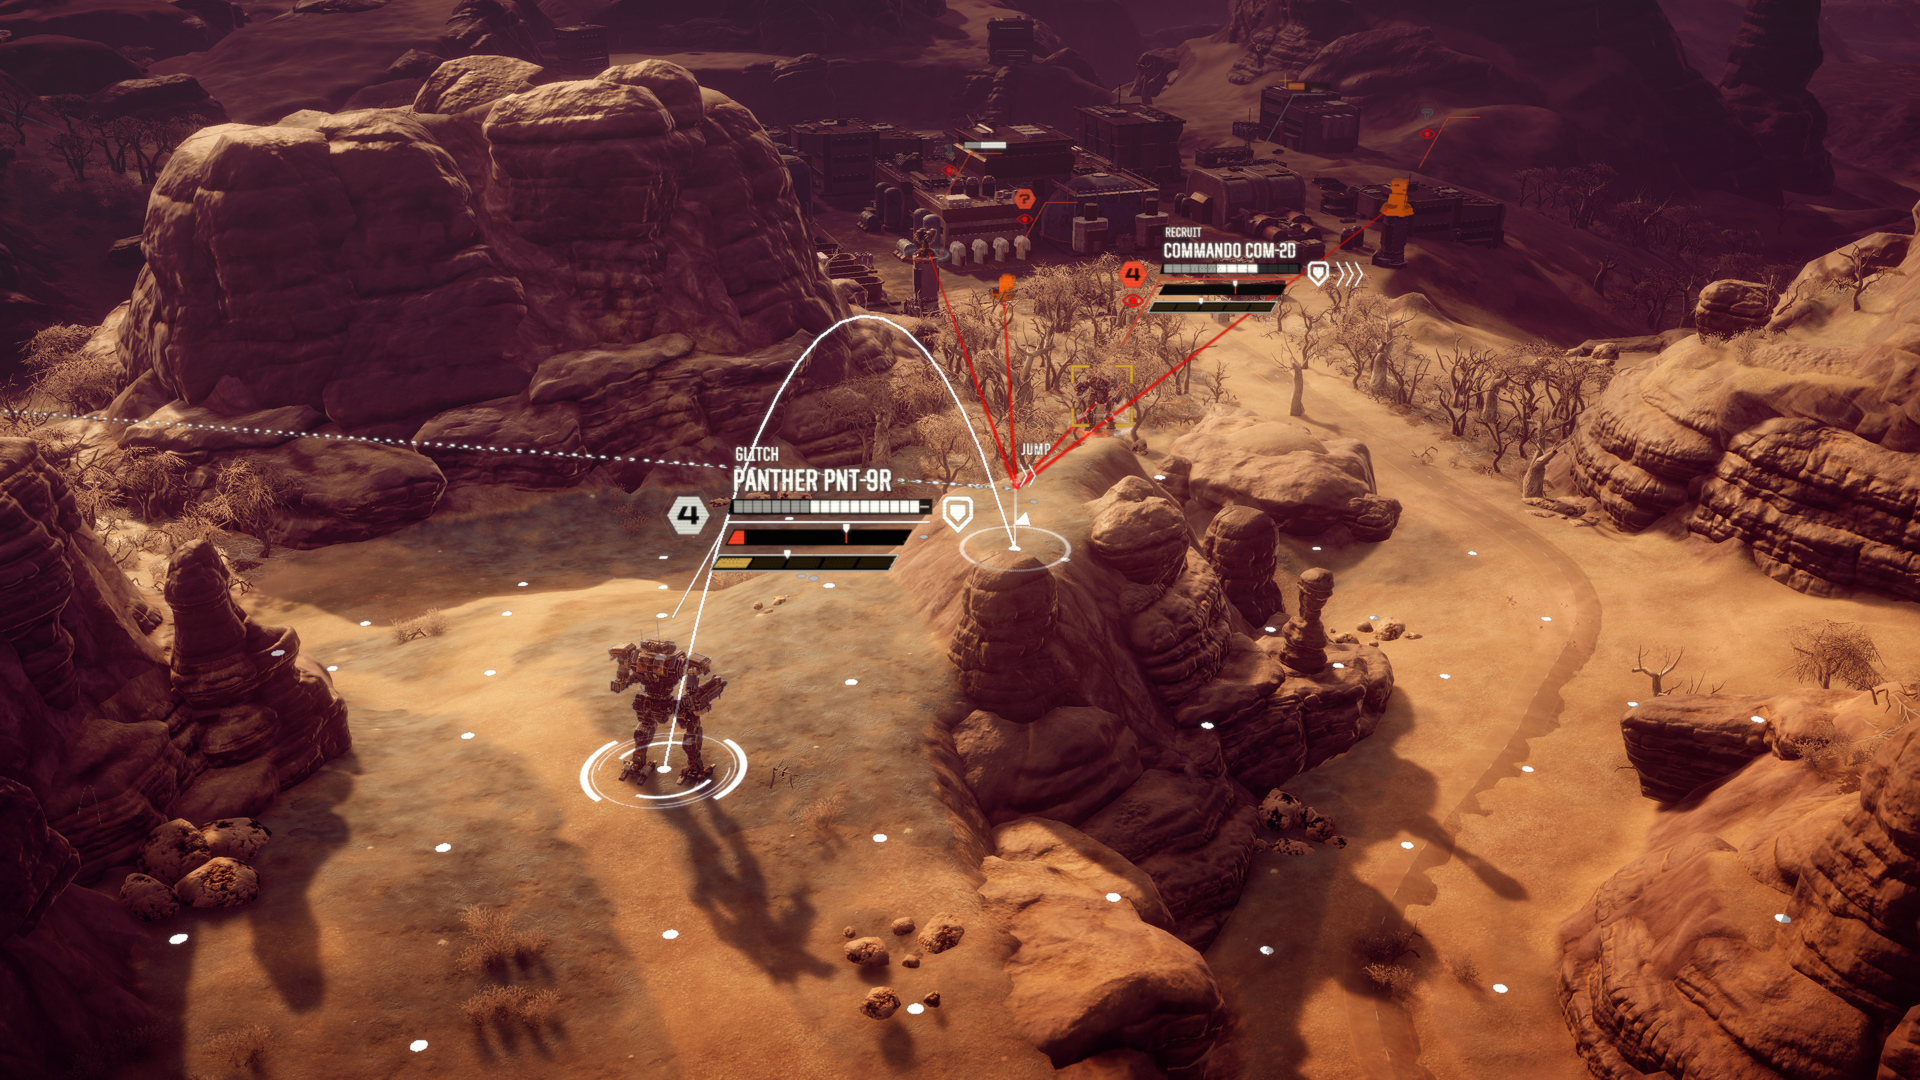 New Battletech story trailer builds up the hype